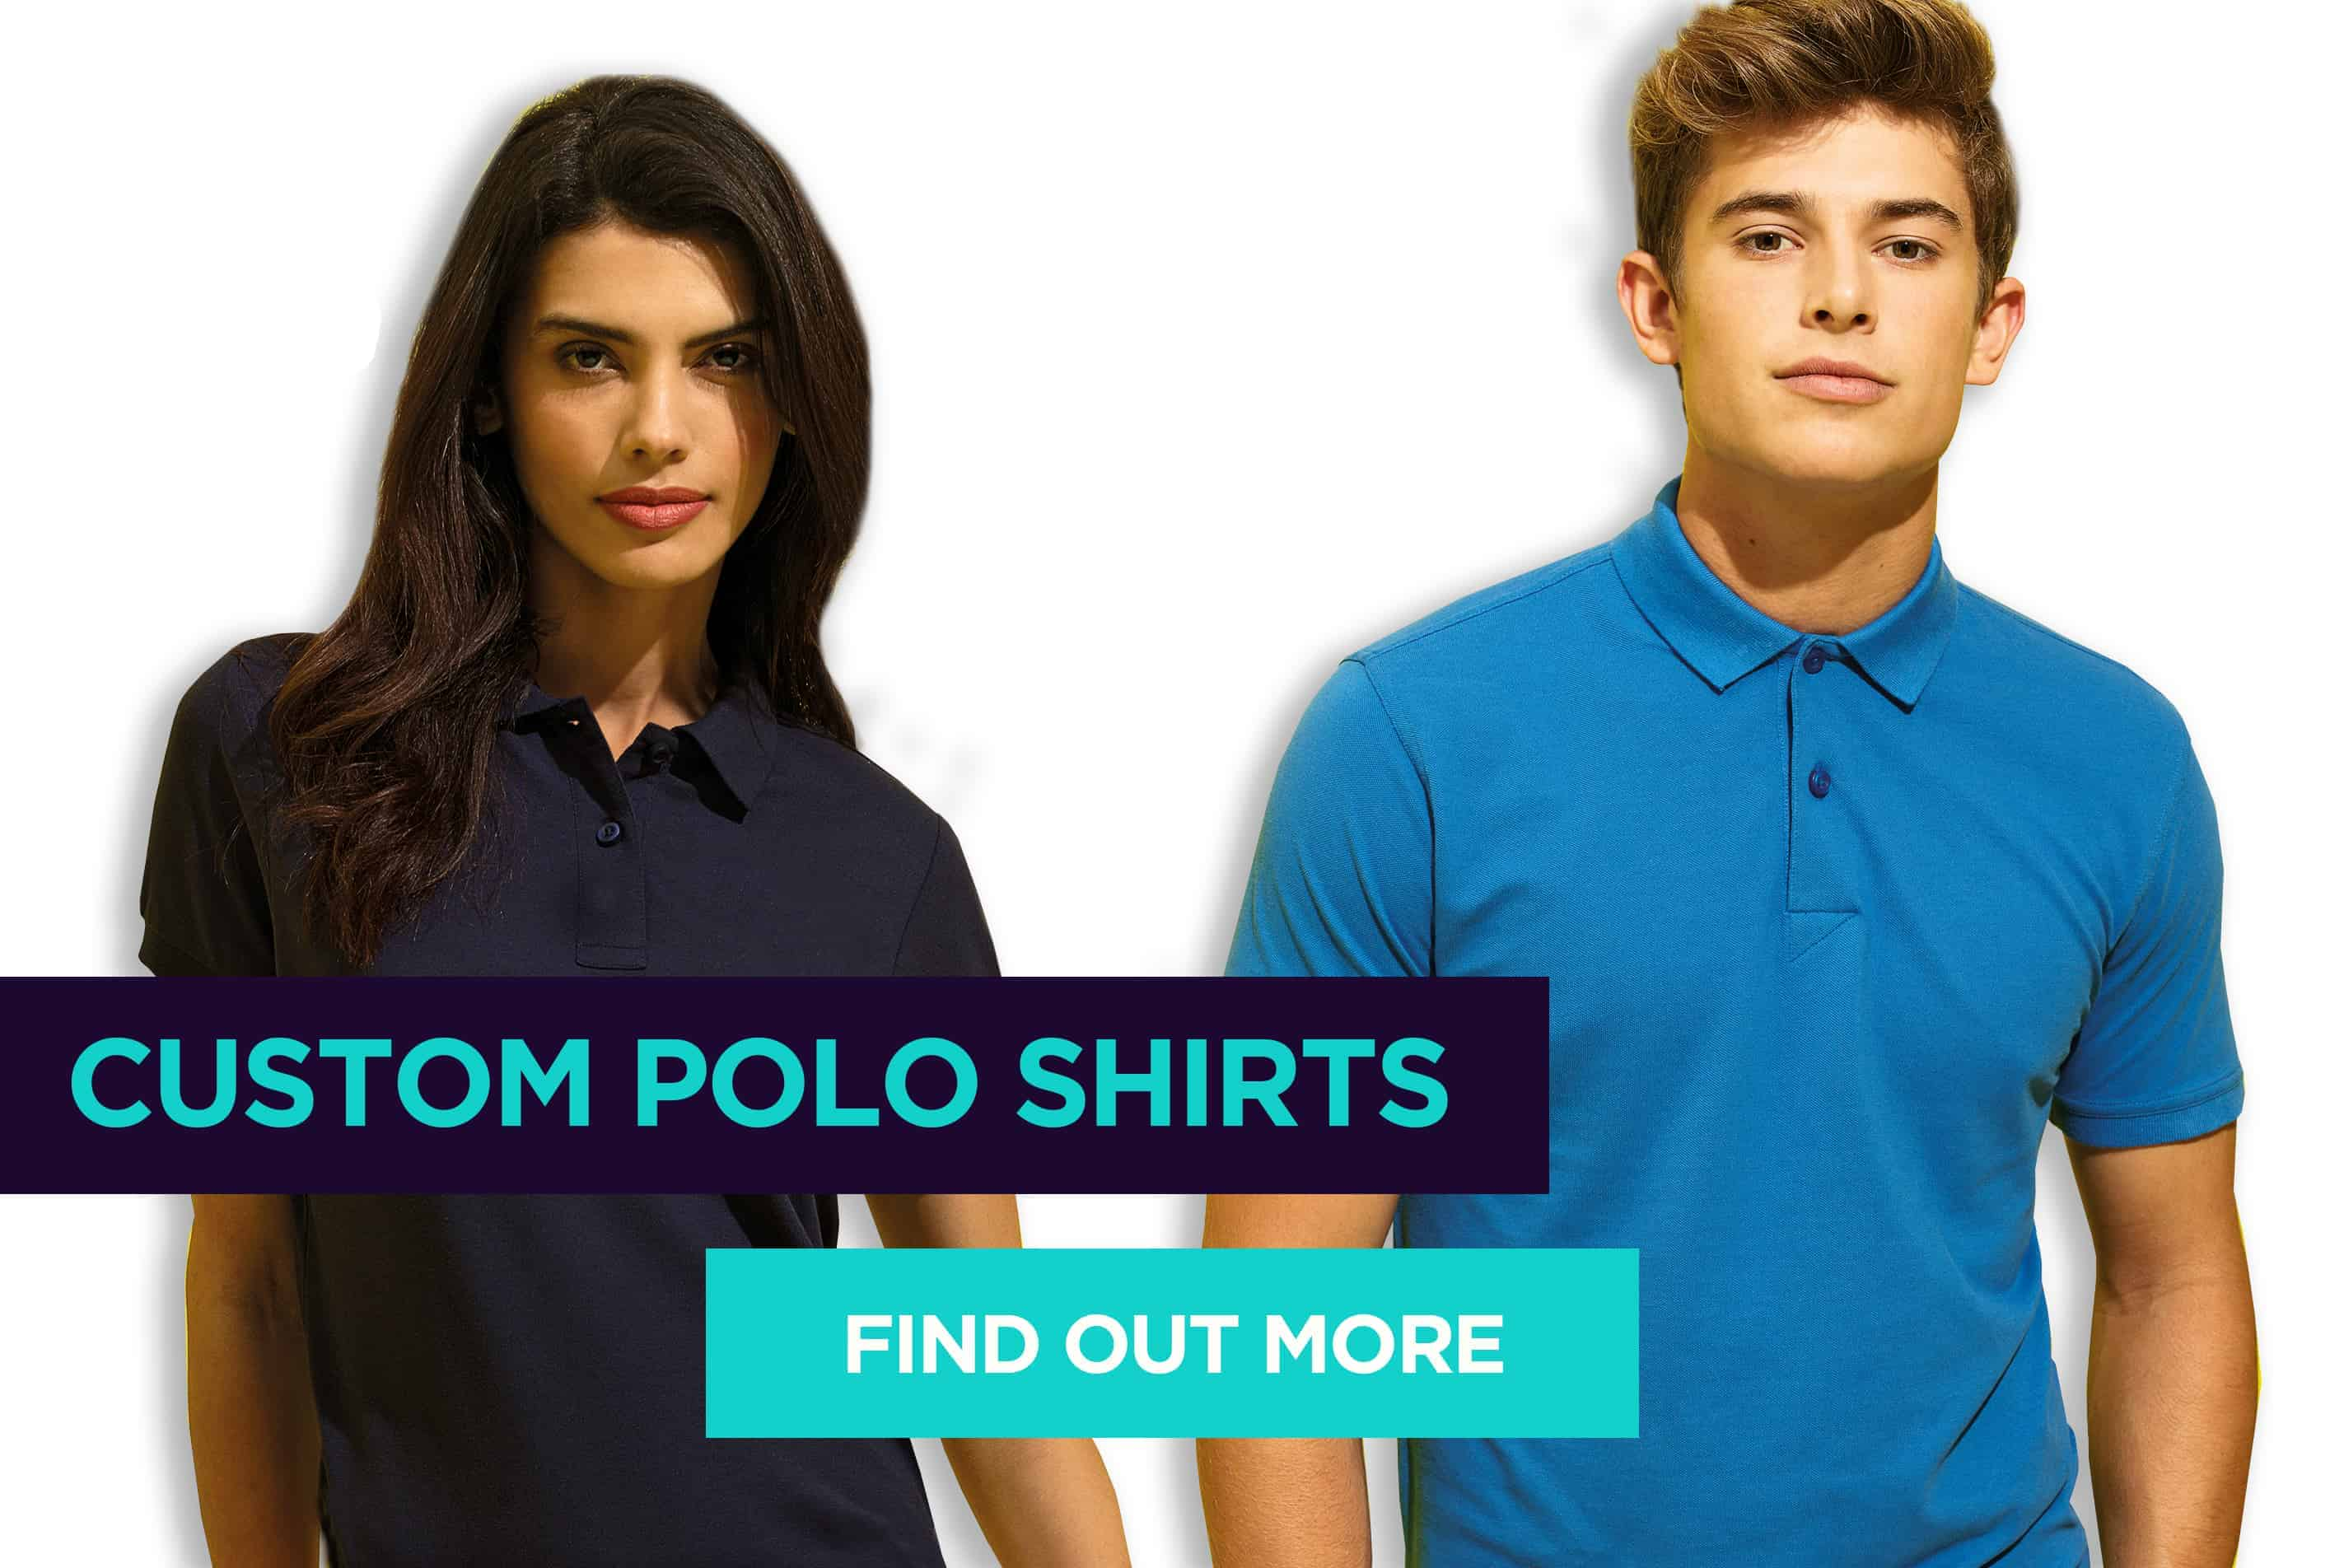 Custom Printed and Embroidered Polo Shirts in Milton Keynes and Buckingham